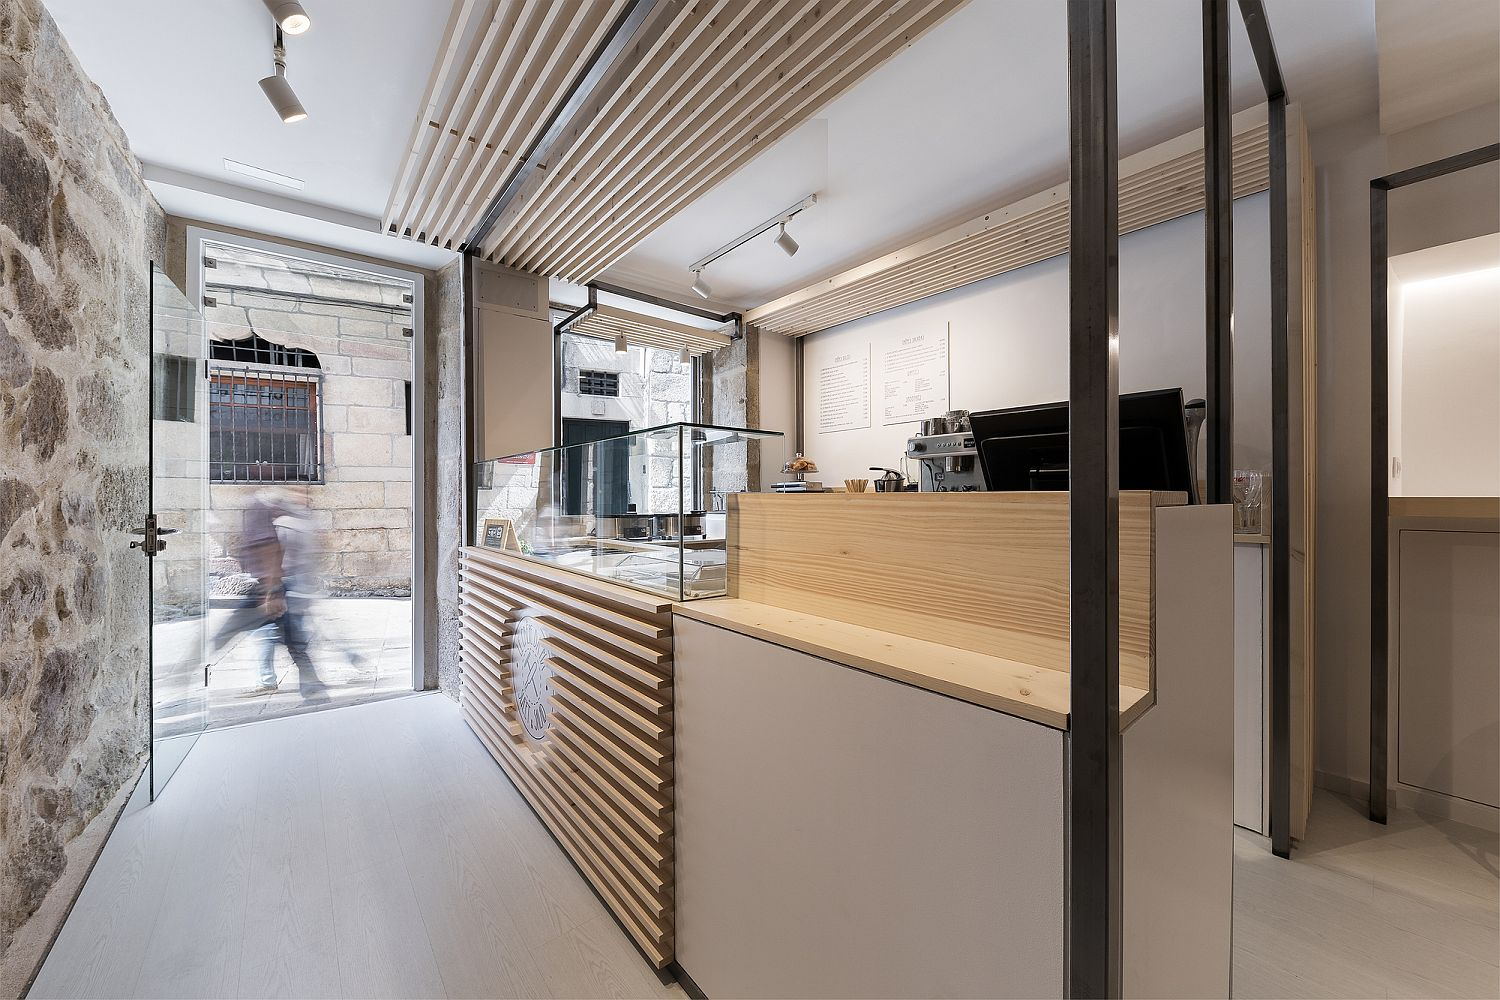 Counter at the start of the small restaurant that flows into the street outside